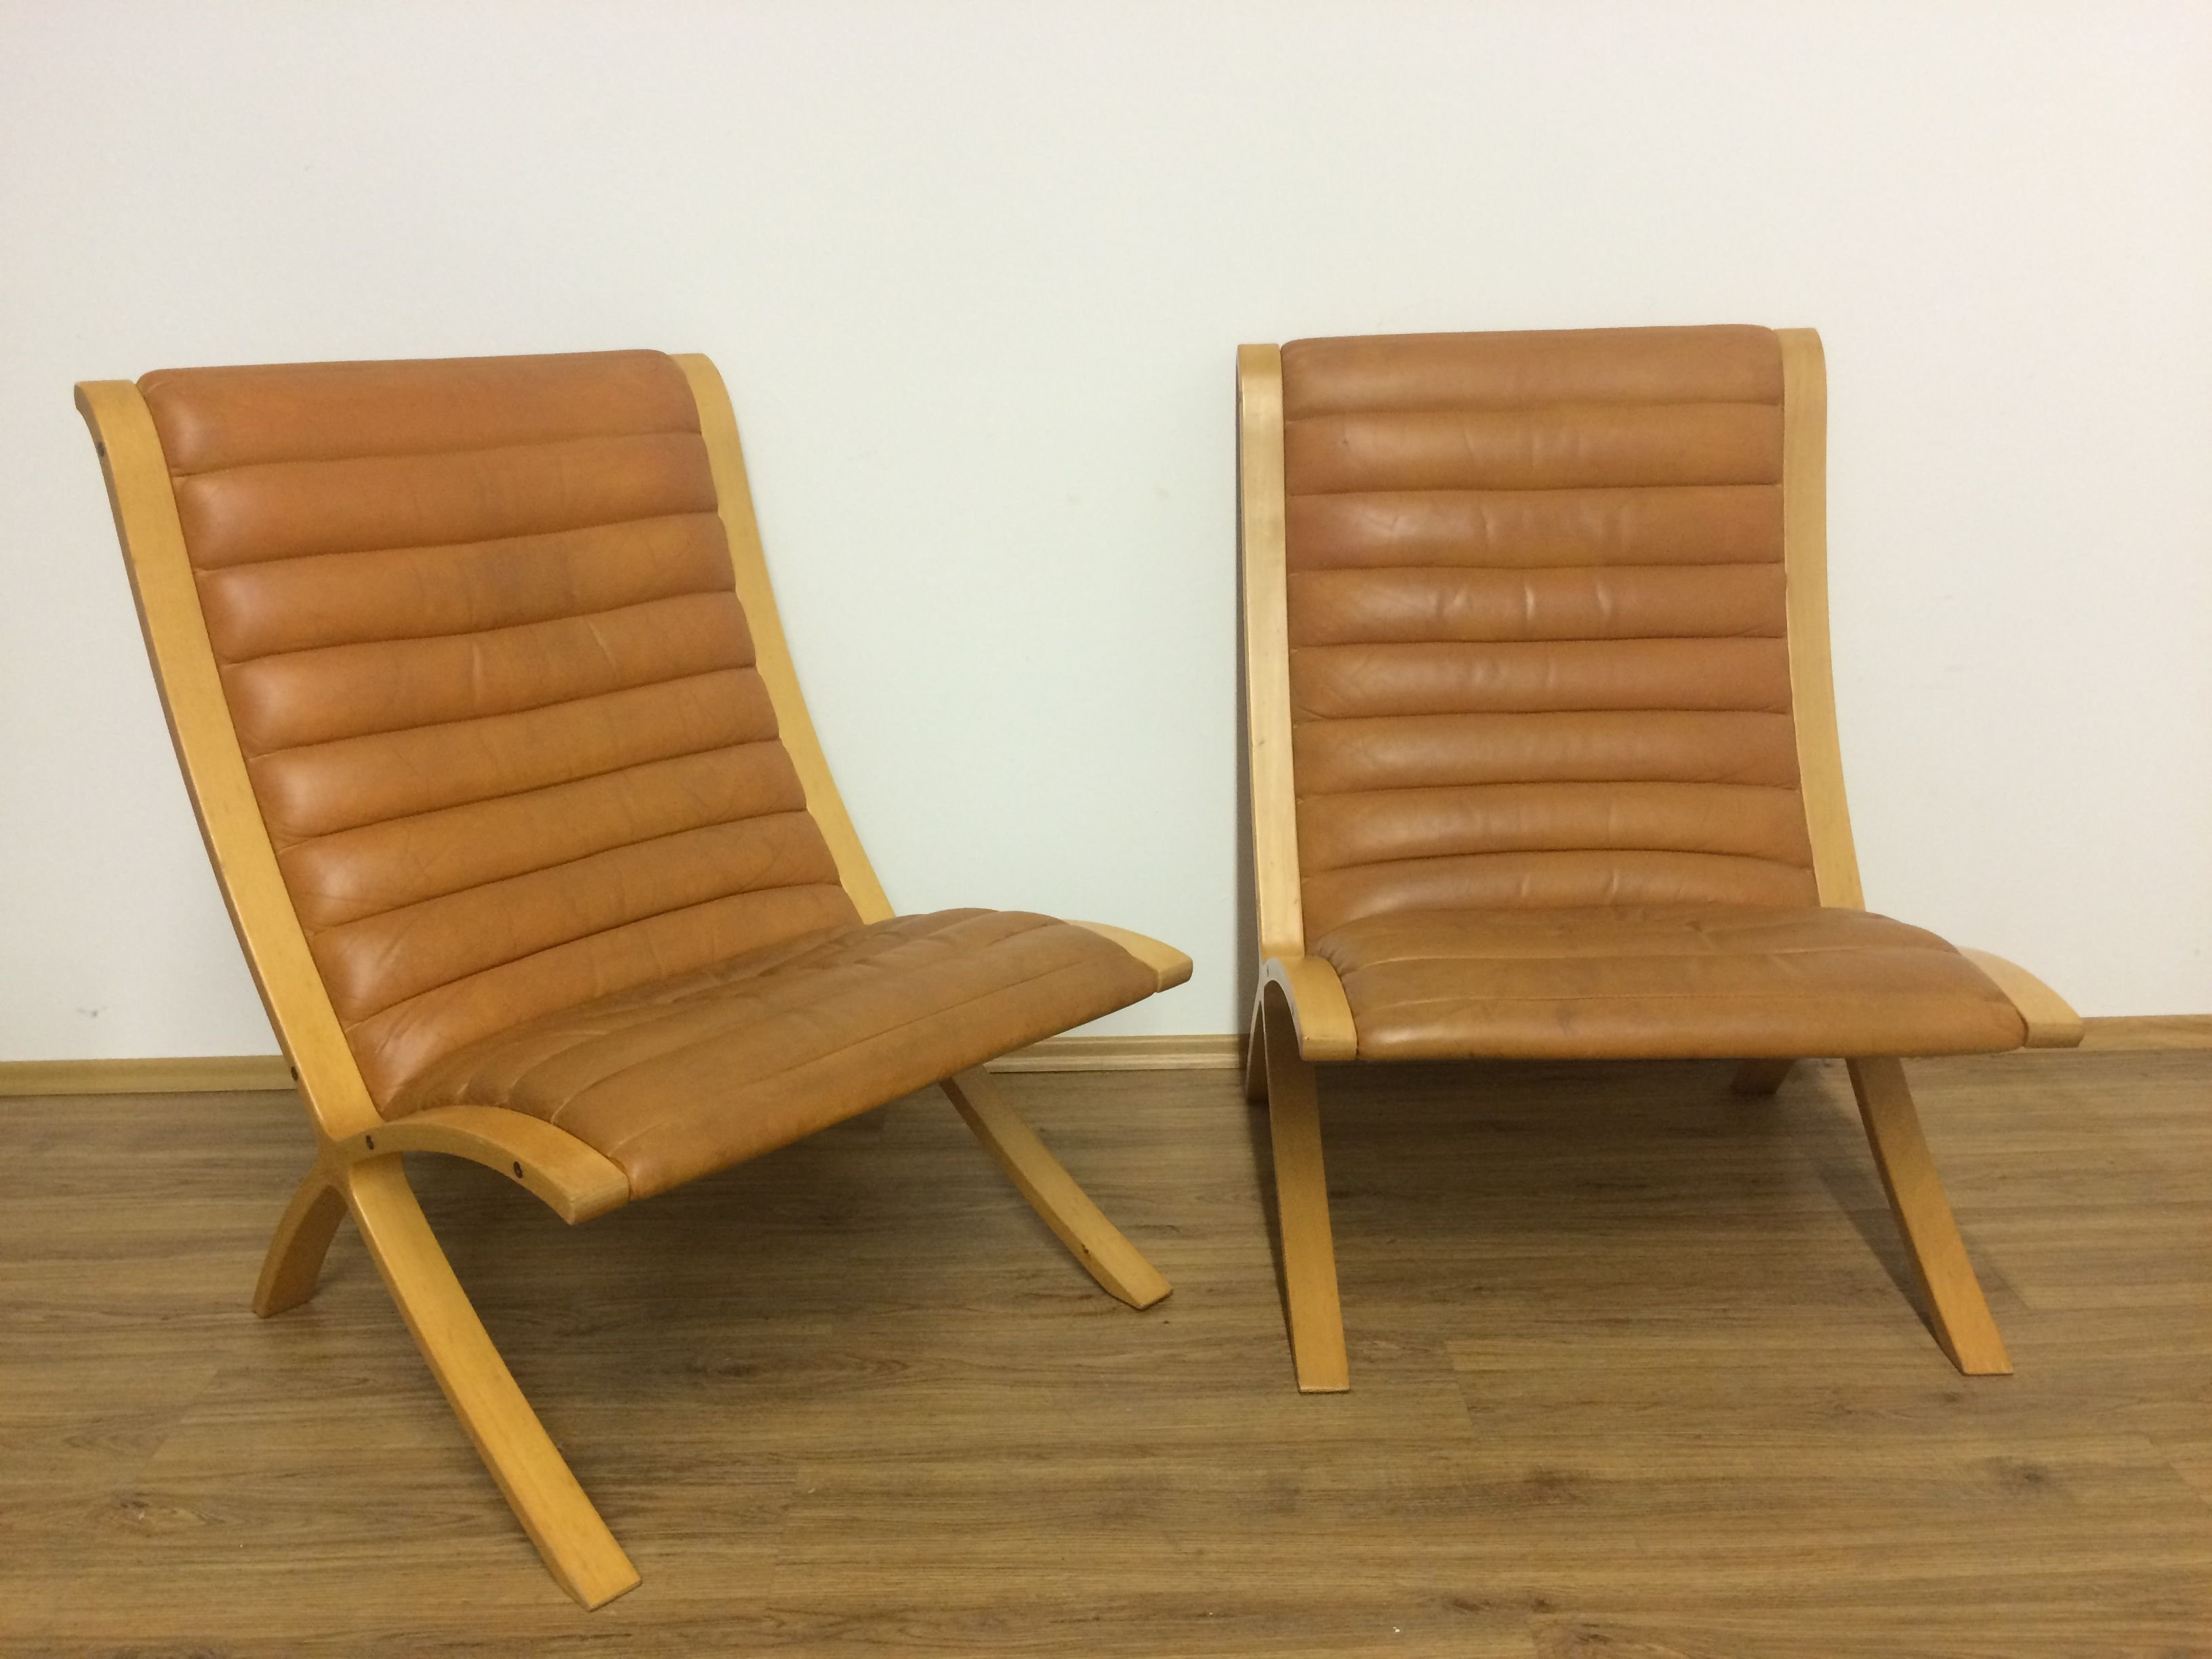 Pair Of Cognac Leather U0027Axu0027 Chairs By Peter Hvidt U0026 Orla Mølgaard Nielsen Amazing Ideas